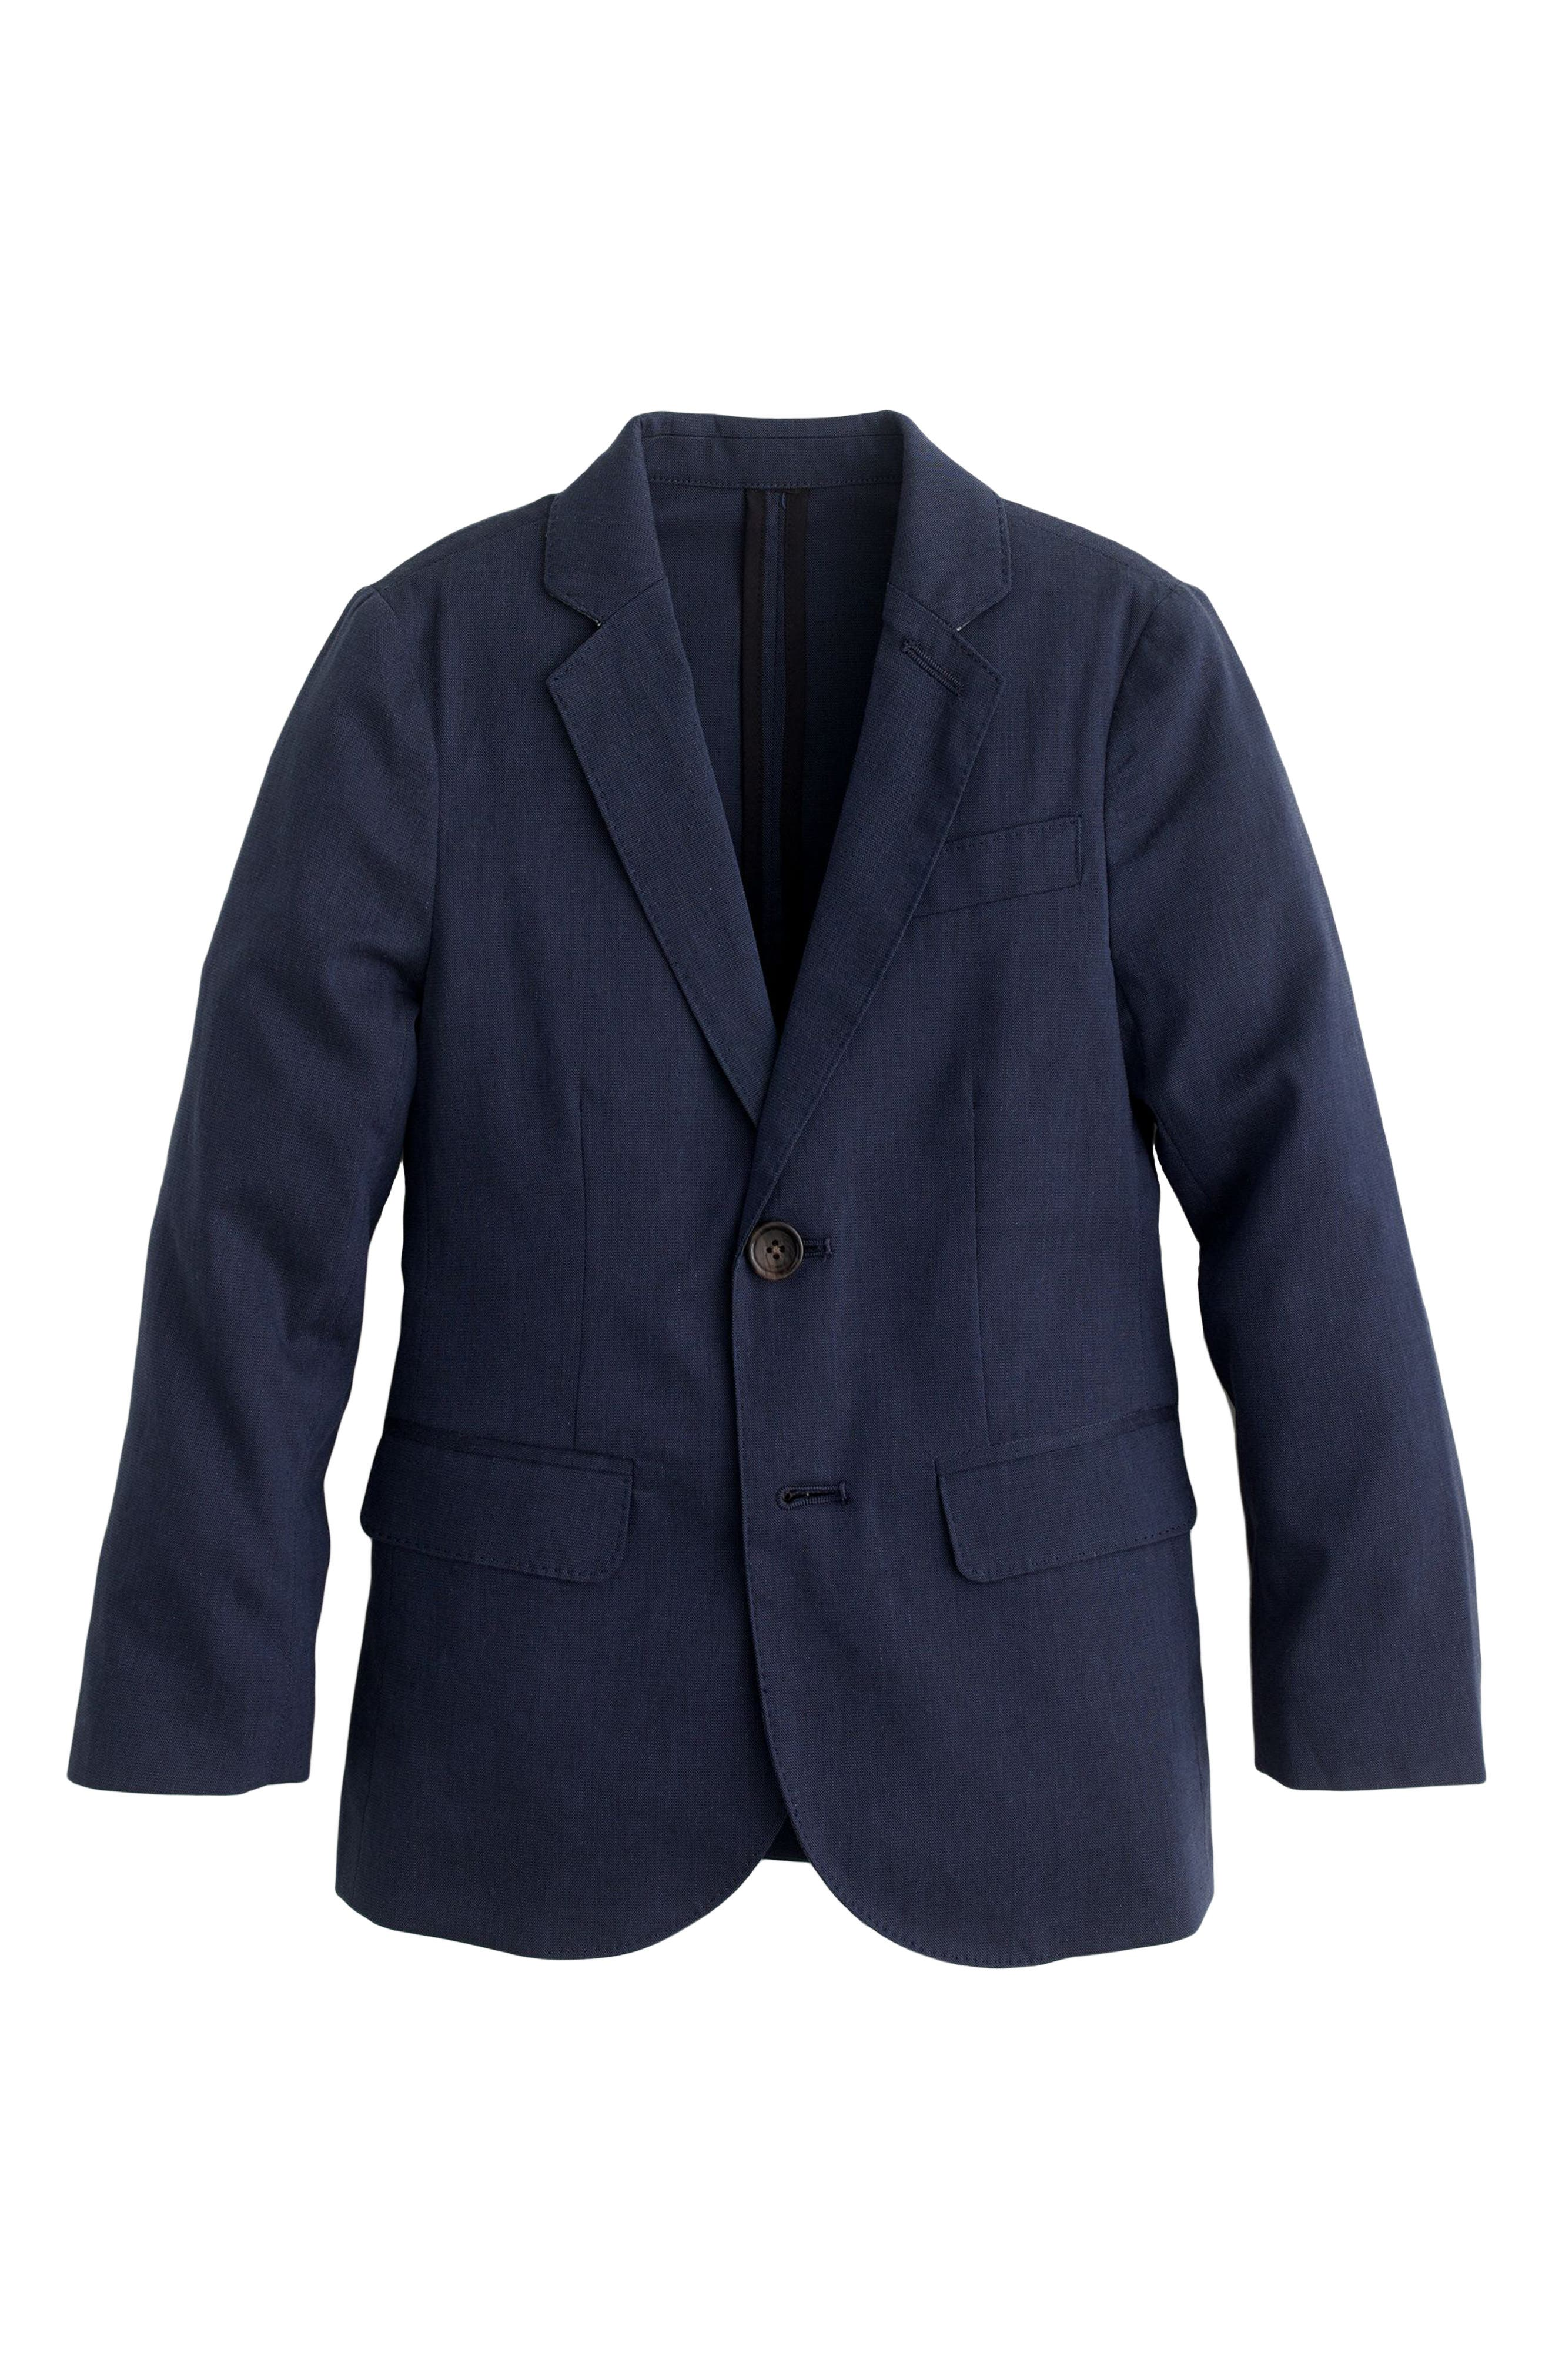 Ludlow Unstructured Suit Jacket,                             Main thumbnail 1, color,                             Navy